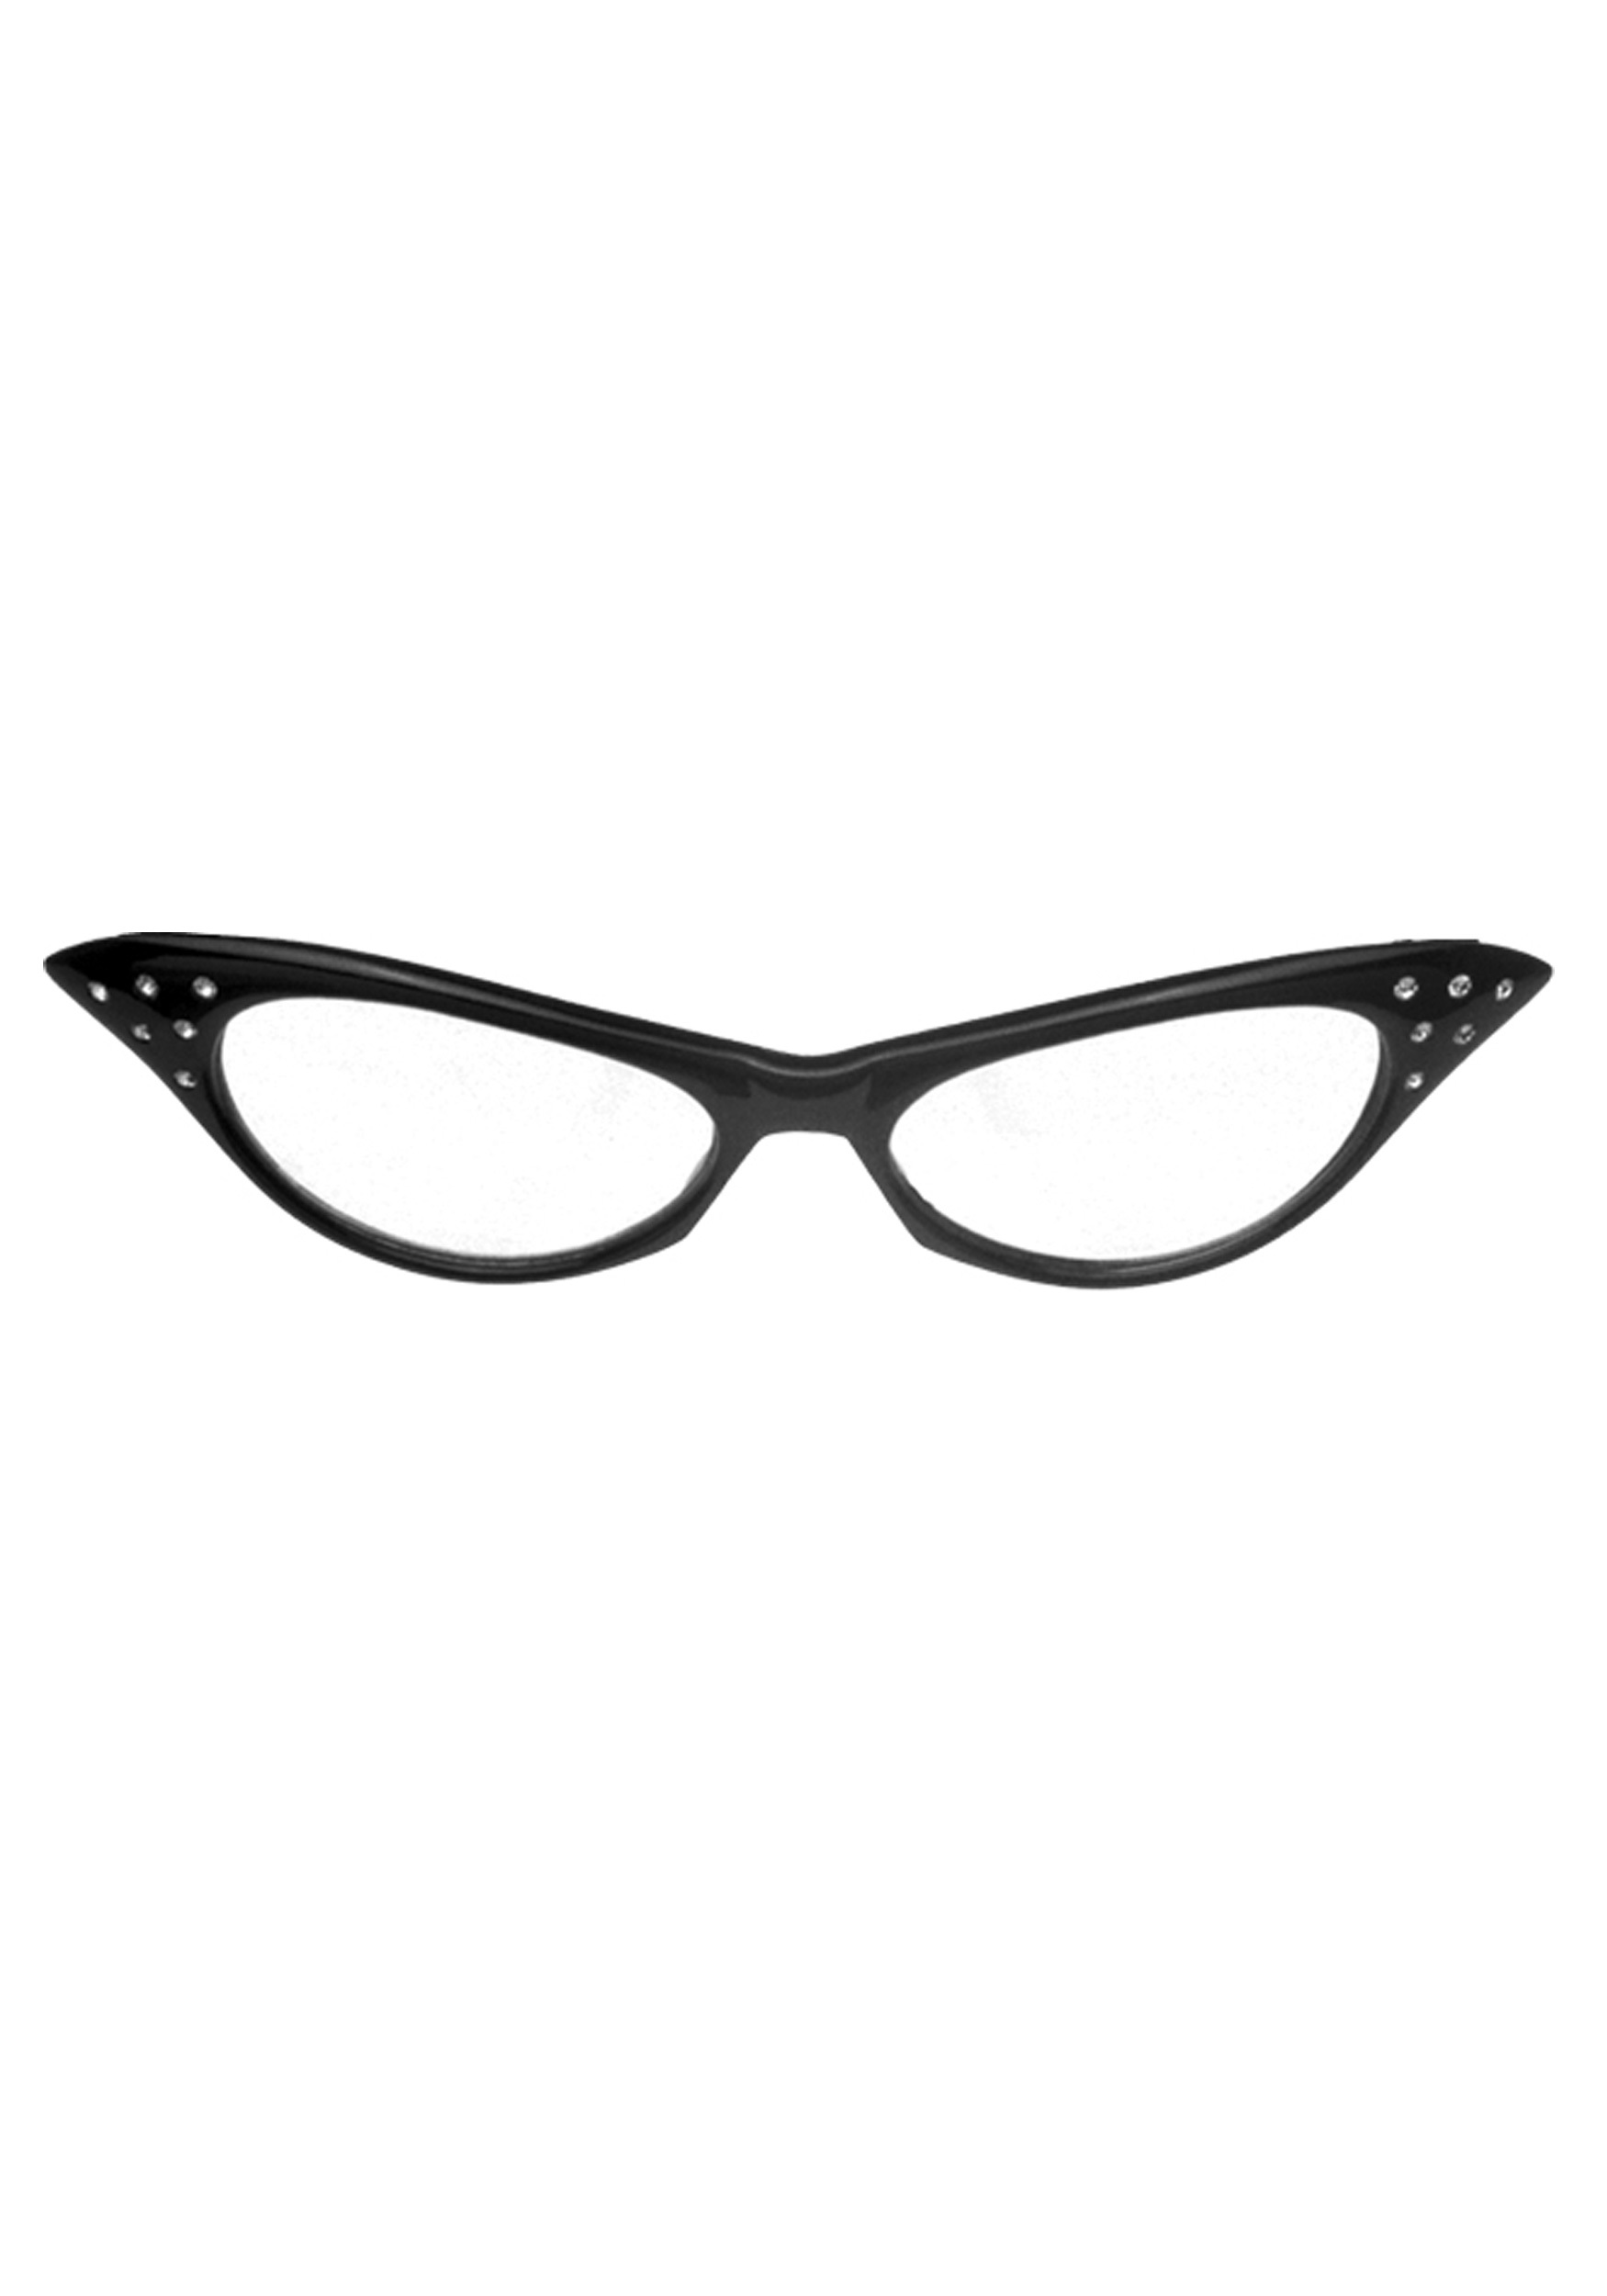 1750x2500 Clip Art Ladies Eye Glasses Frames Cliparts